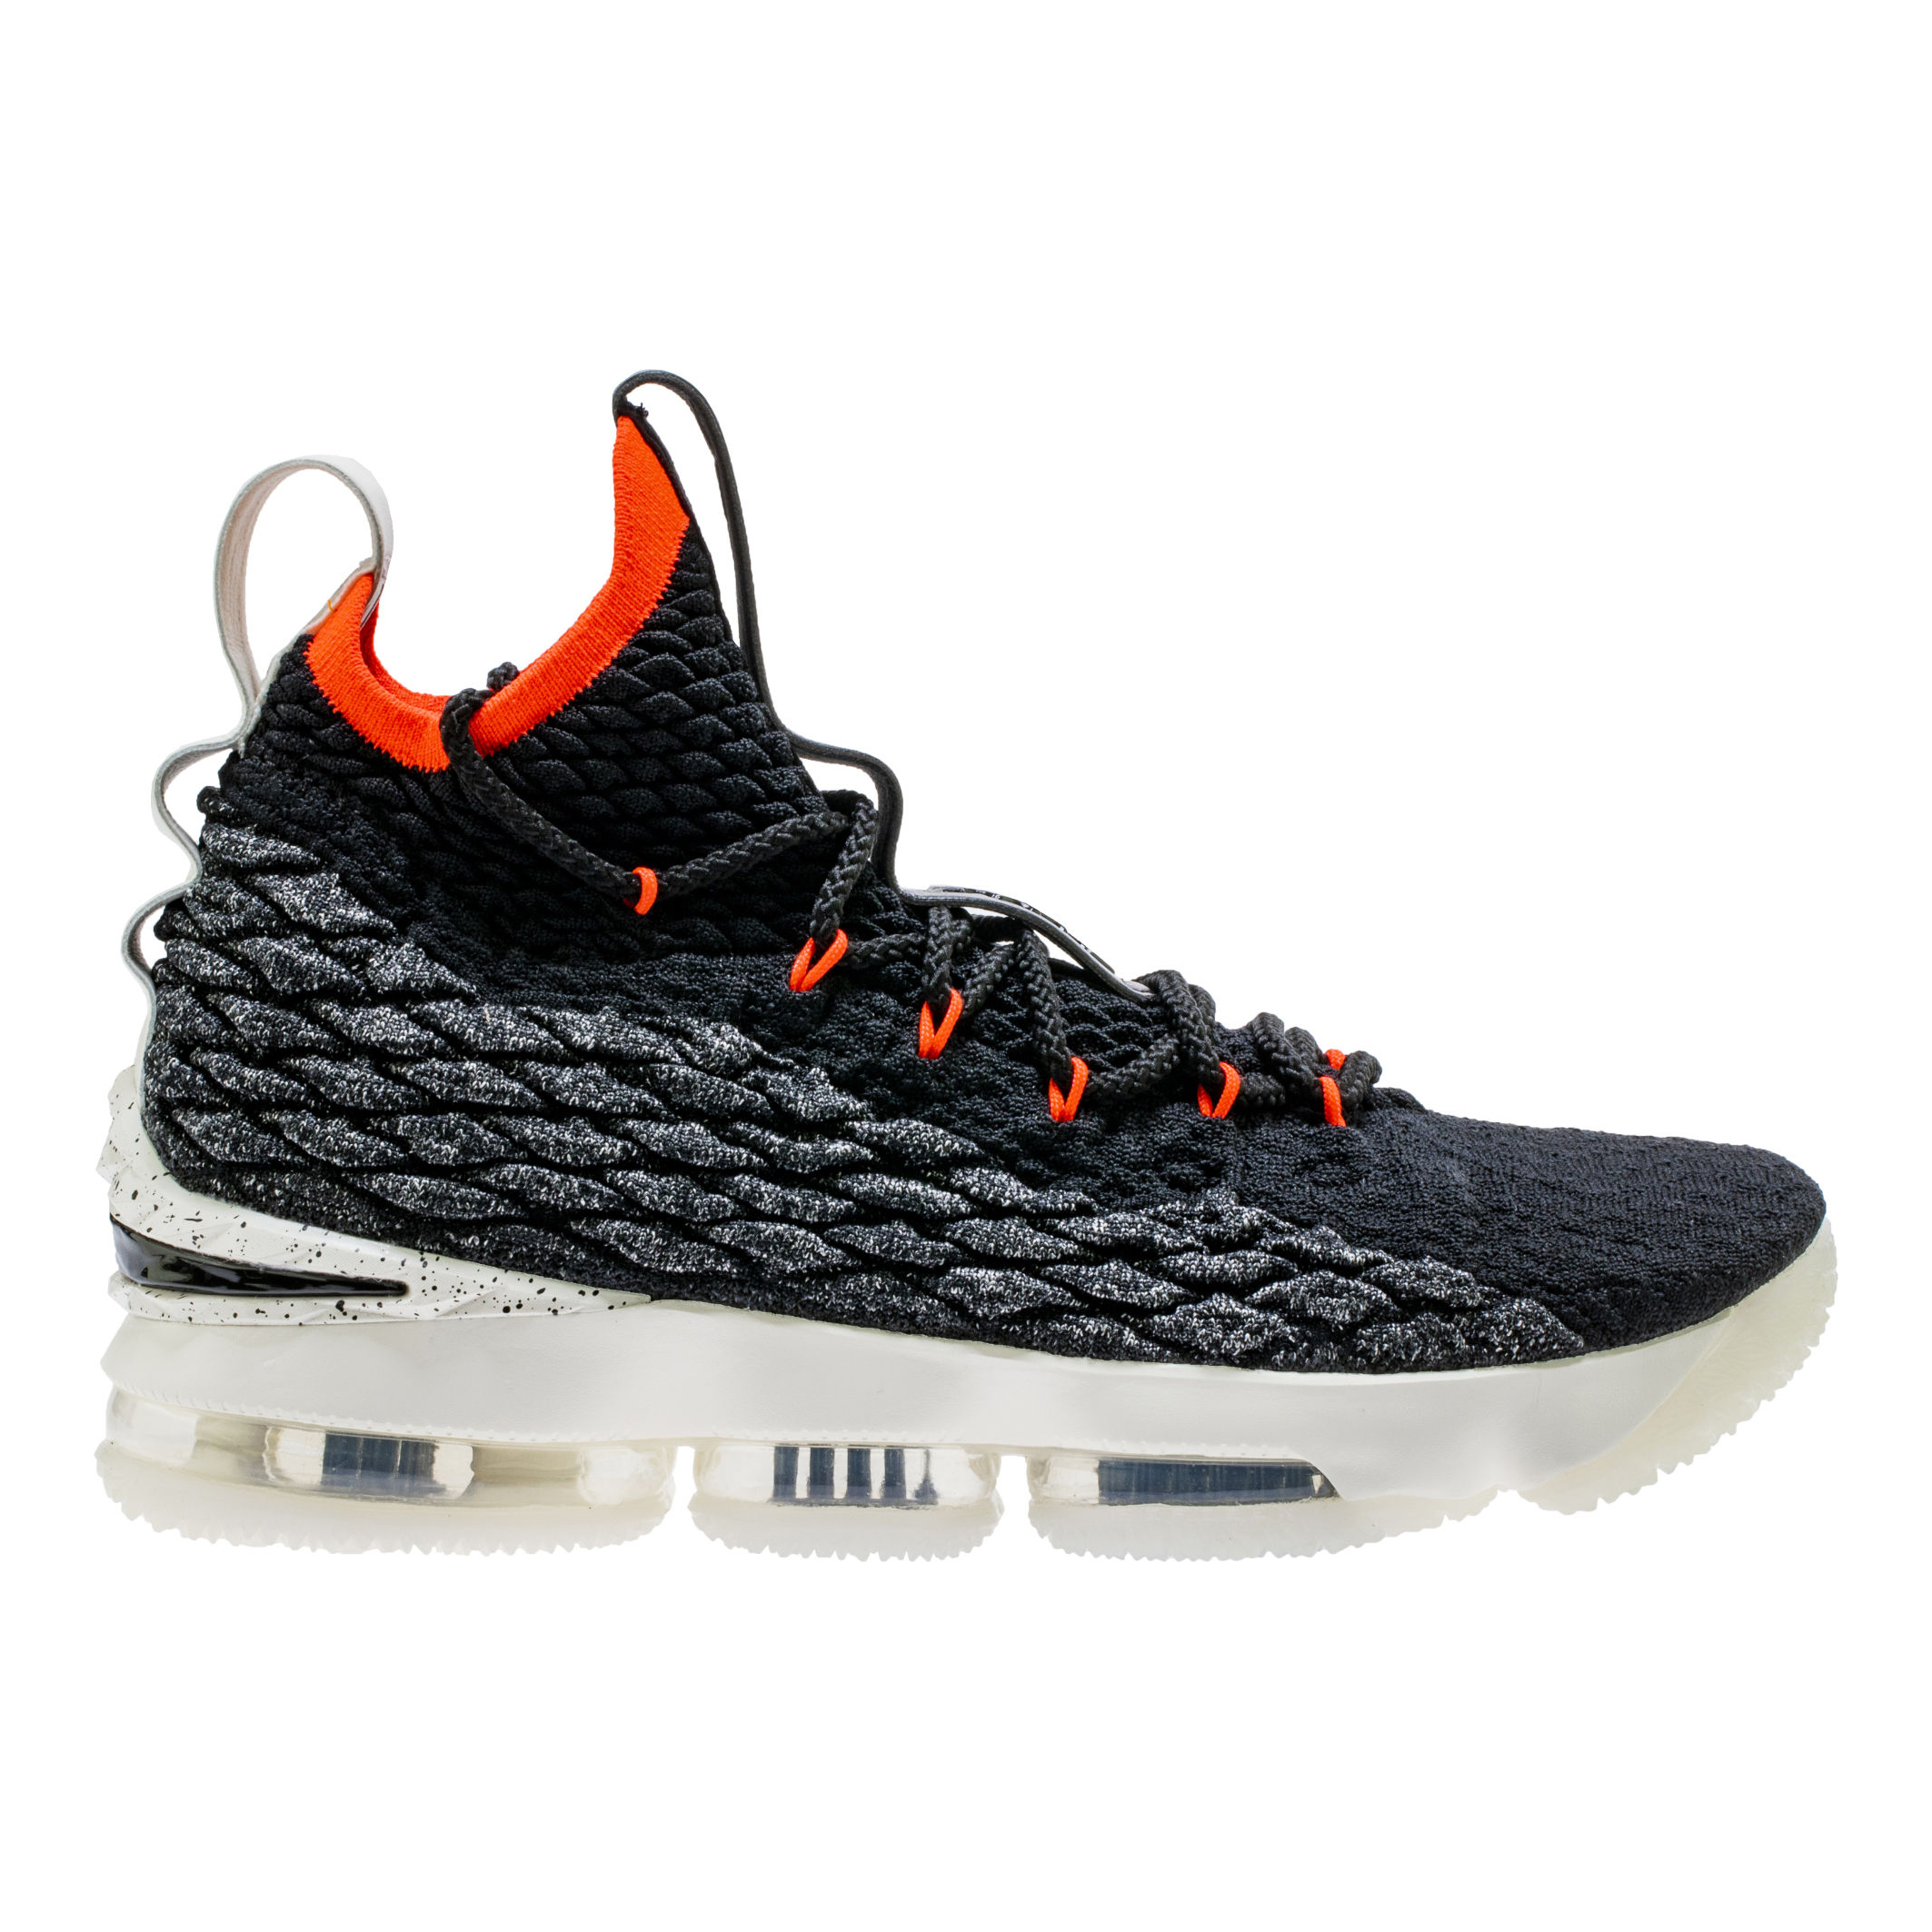 b27a387a812 New Nike LeBron 15  Black Sail Bright Crimson  Releases in May ...